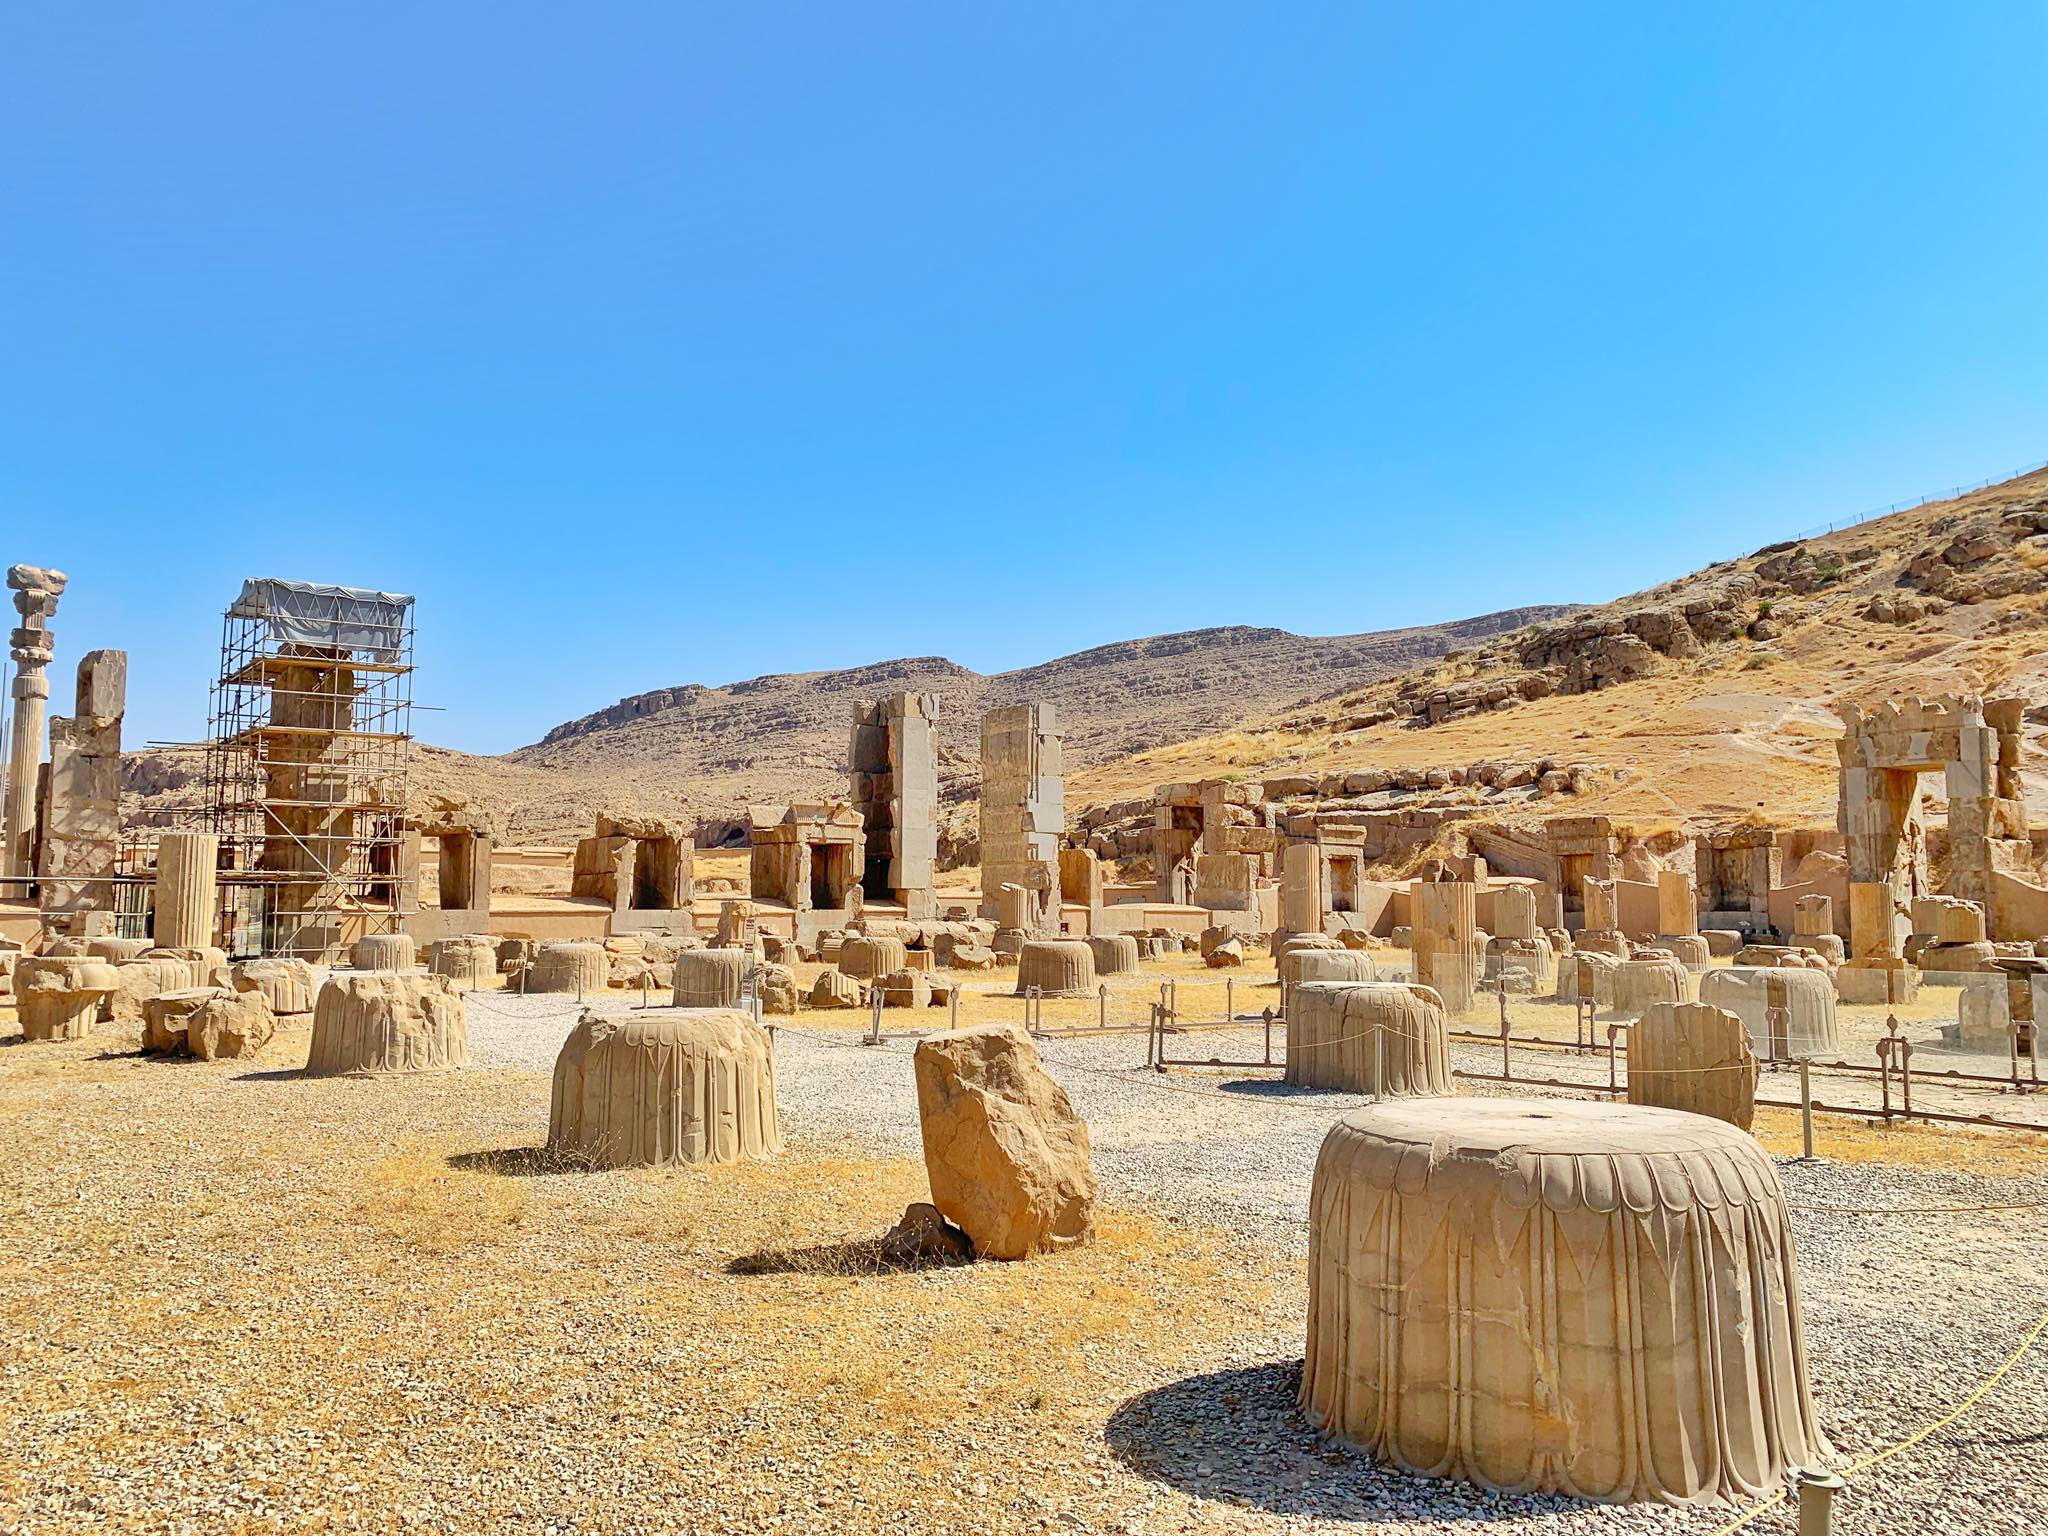 Kach Solo Travels in 2019 UNESCO heritages sites of Persepolis and Pasagardae20.jpg